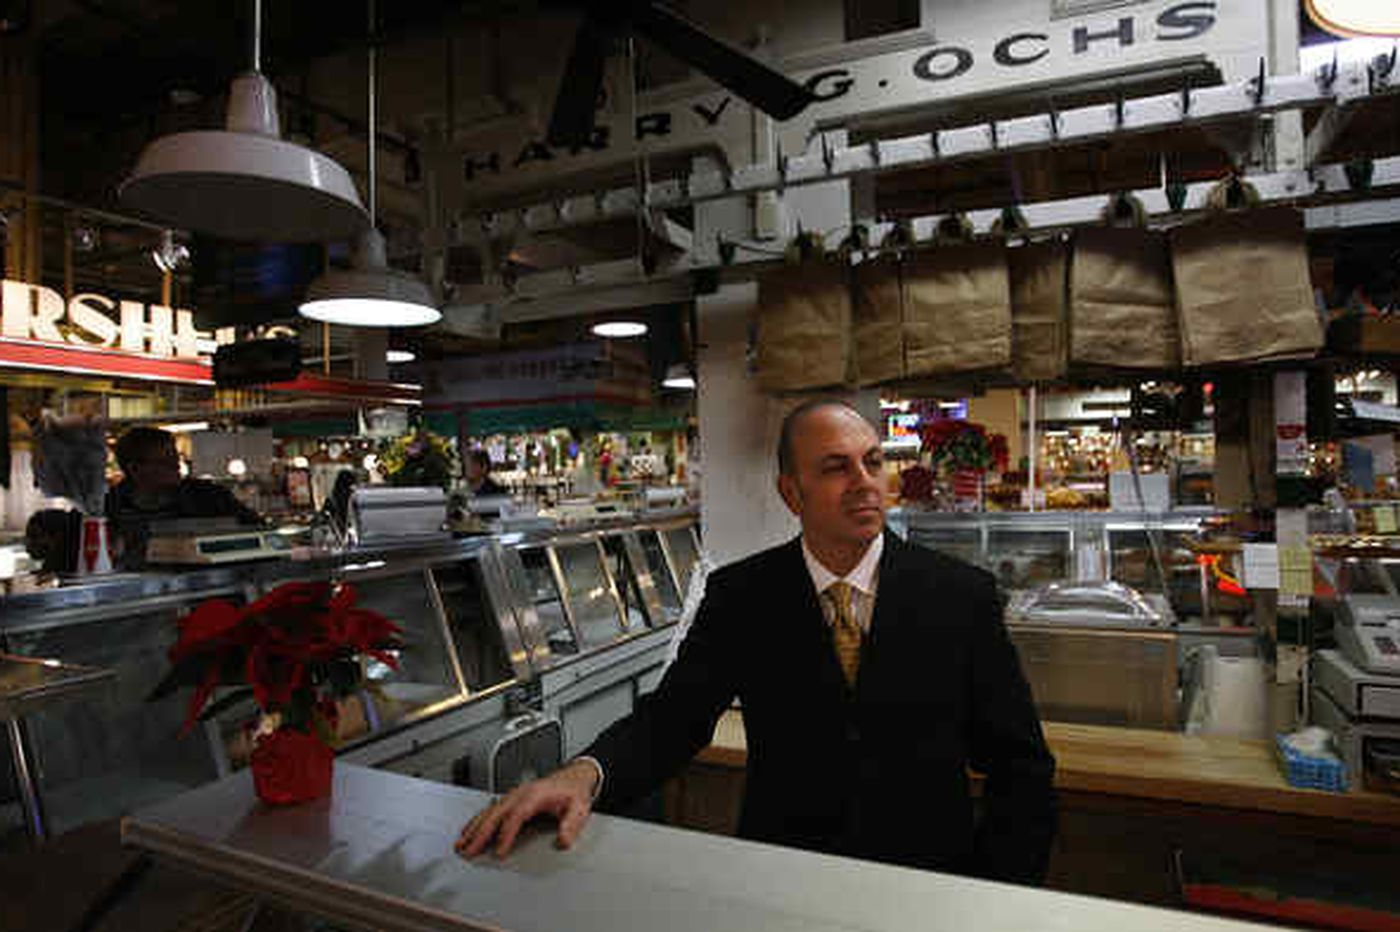 Ochs faces eviction from Reading Terminal